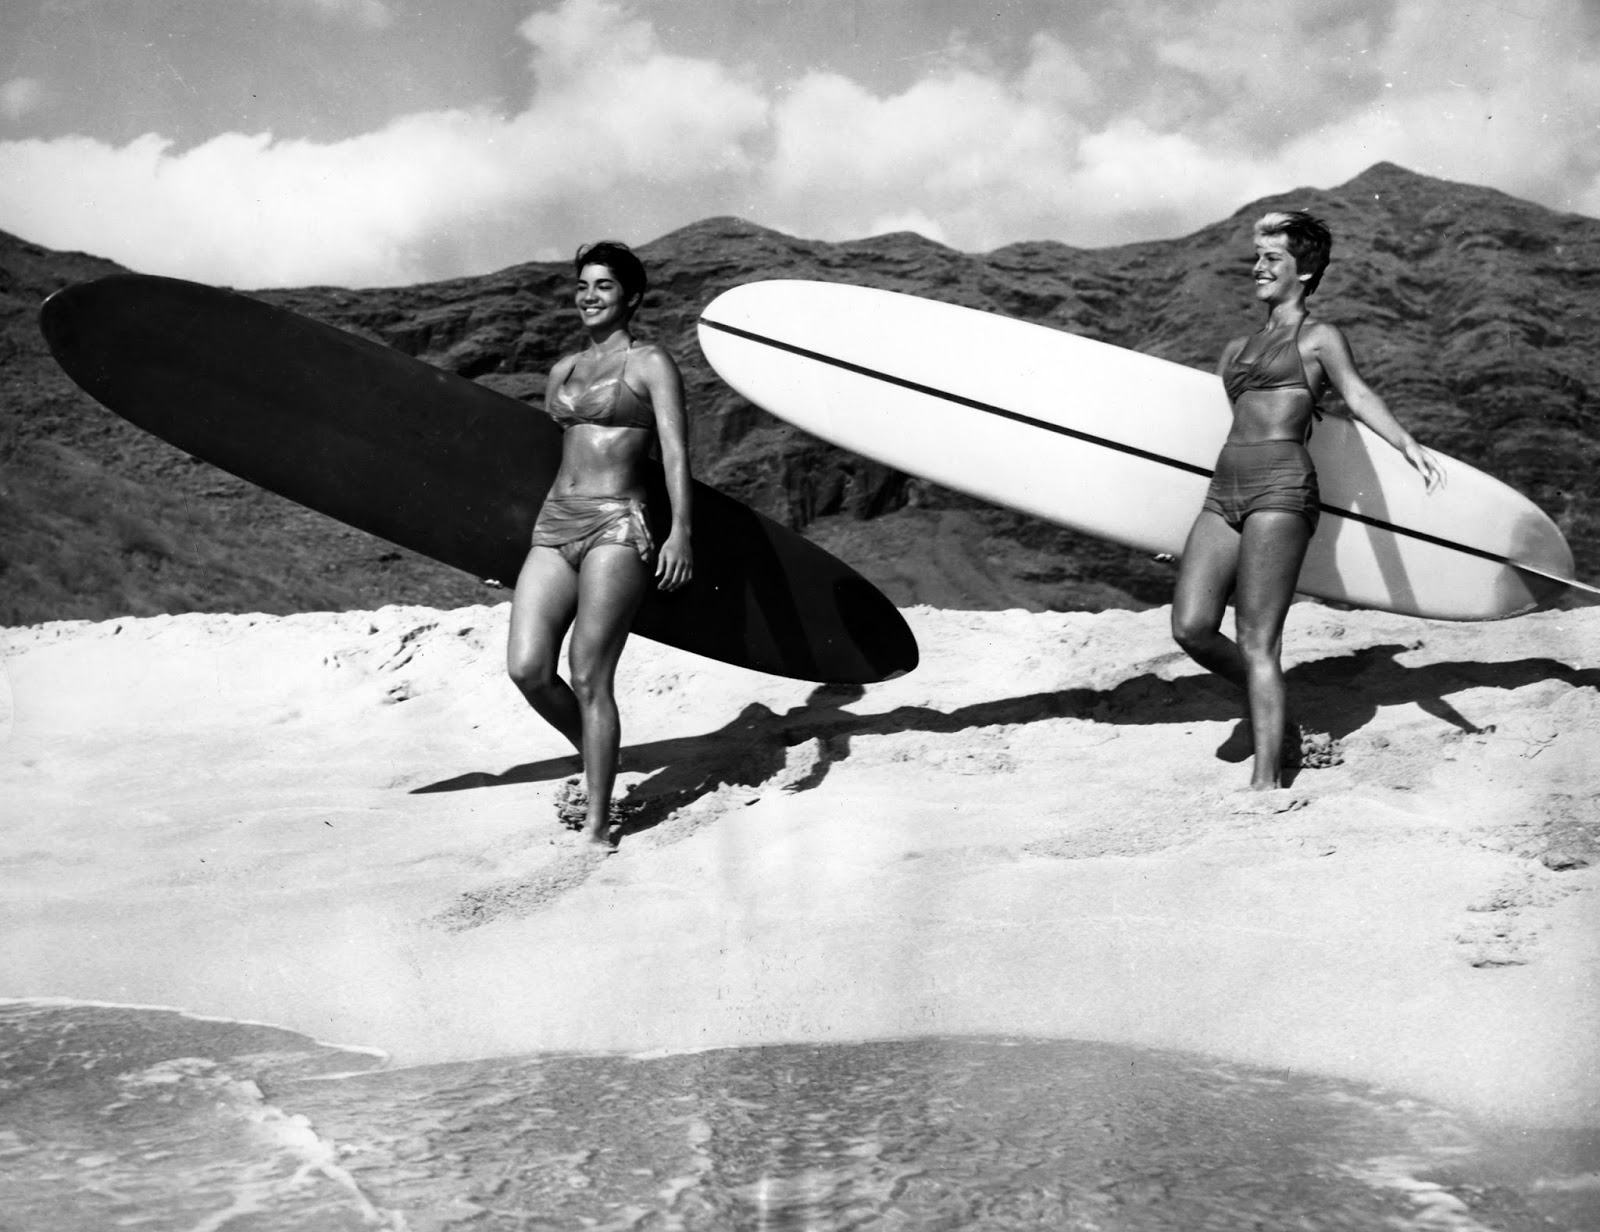 Two Women Carrying Their Surfboards At The Beach 1960 Marka UIG Getty Images